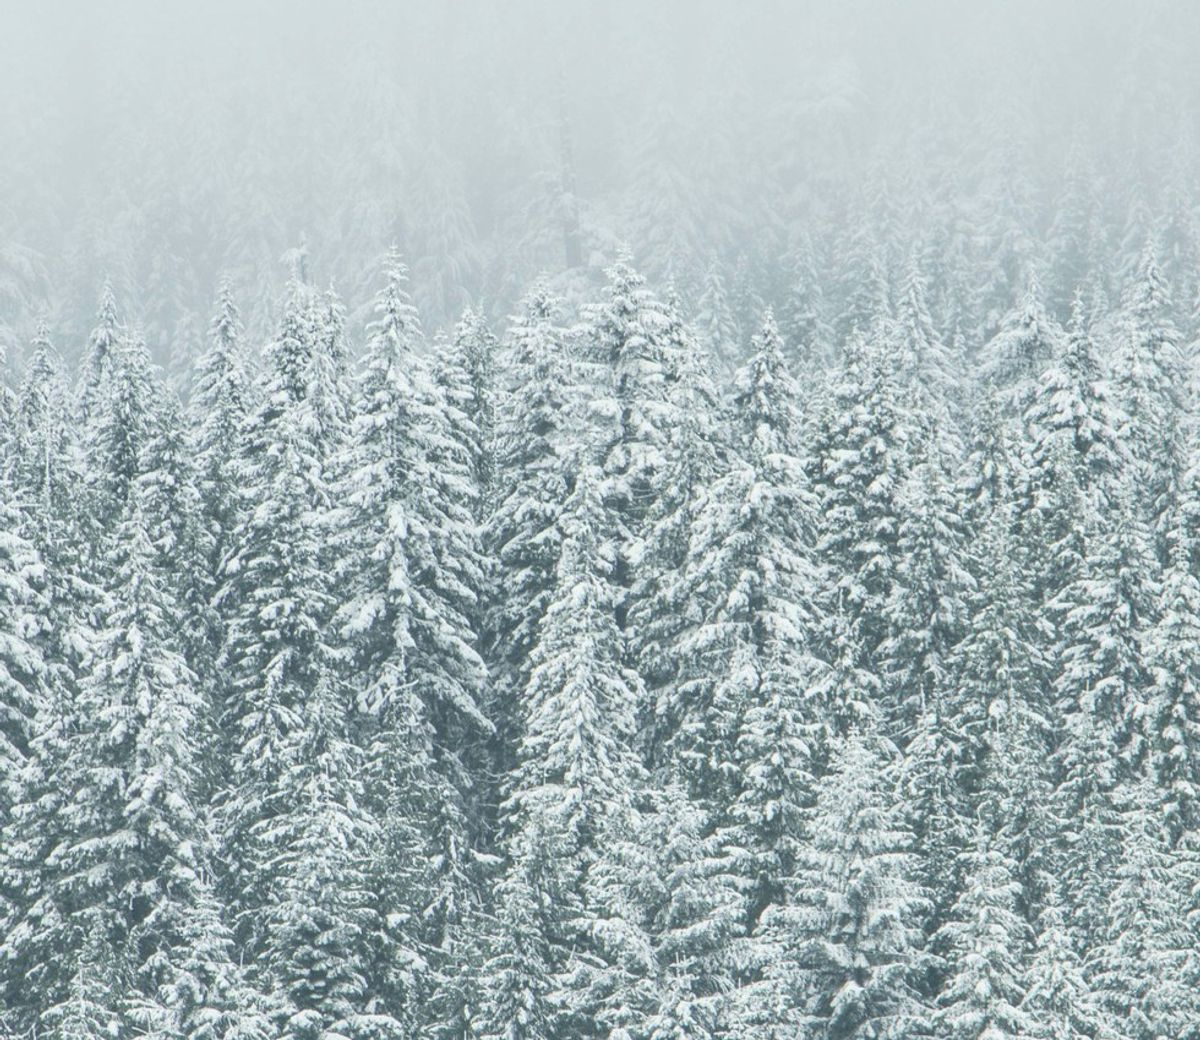 10 Songs For A Warm Winter